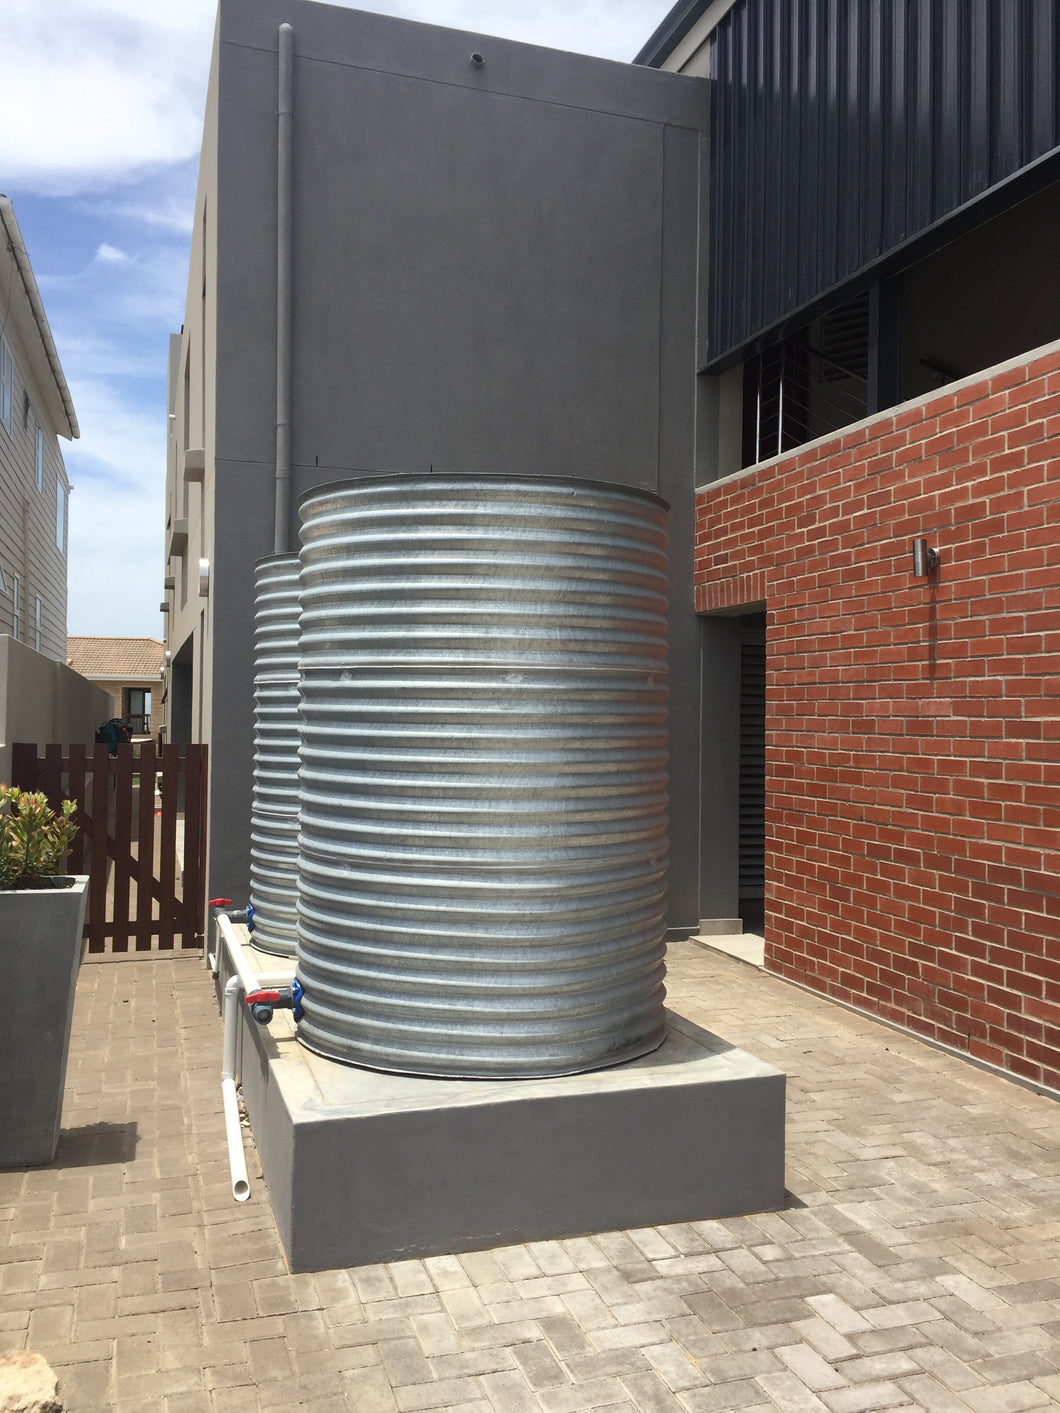 HOME TANK CORRUGATED - 4 000L 1.6MØ X 2.2M HIGH